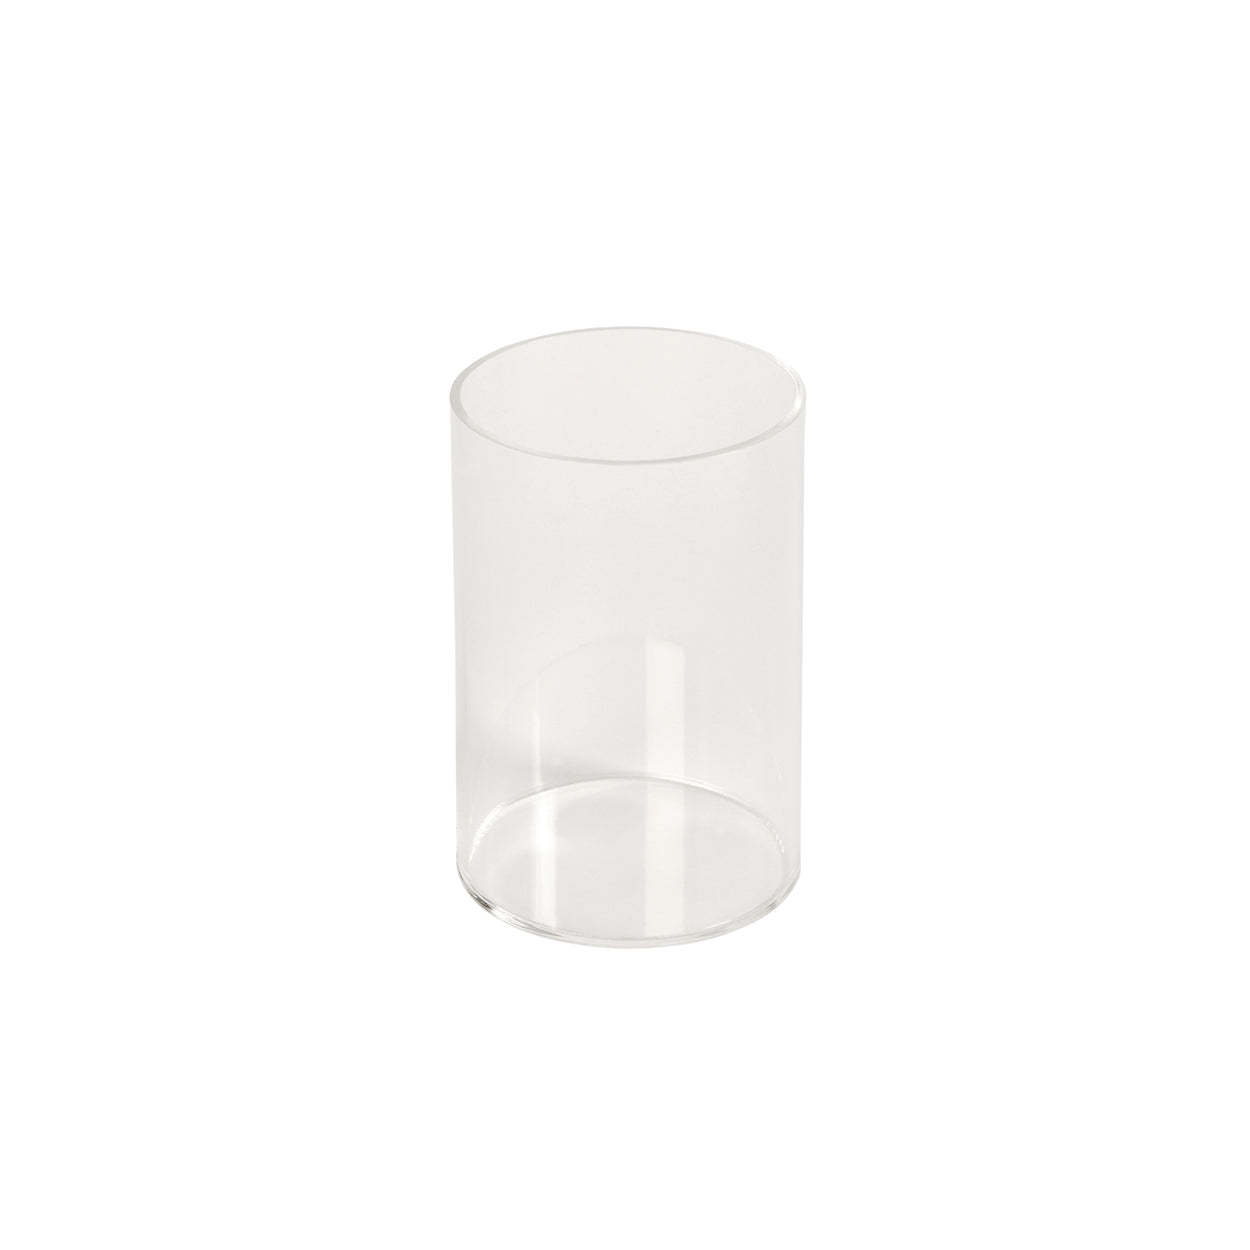 Acrylic Container Round 100 DIA x 200 mm H